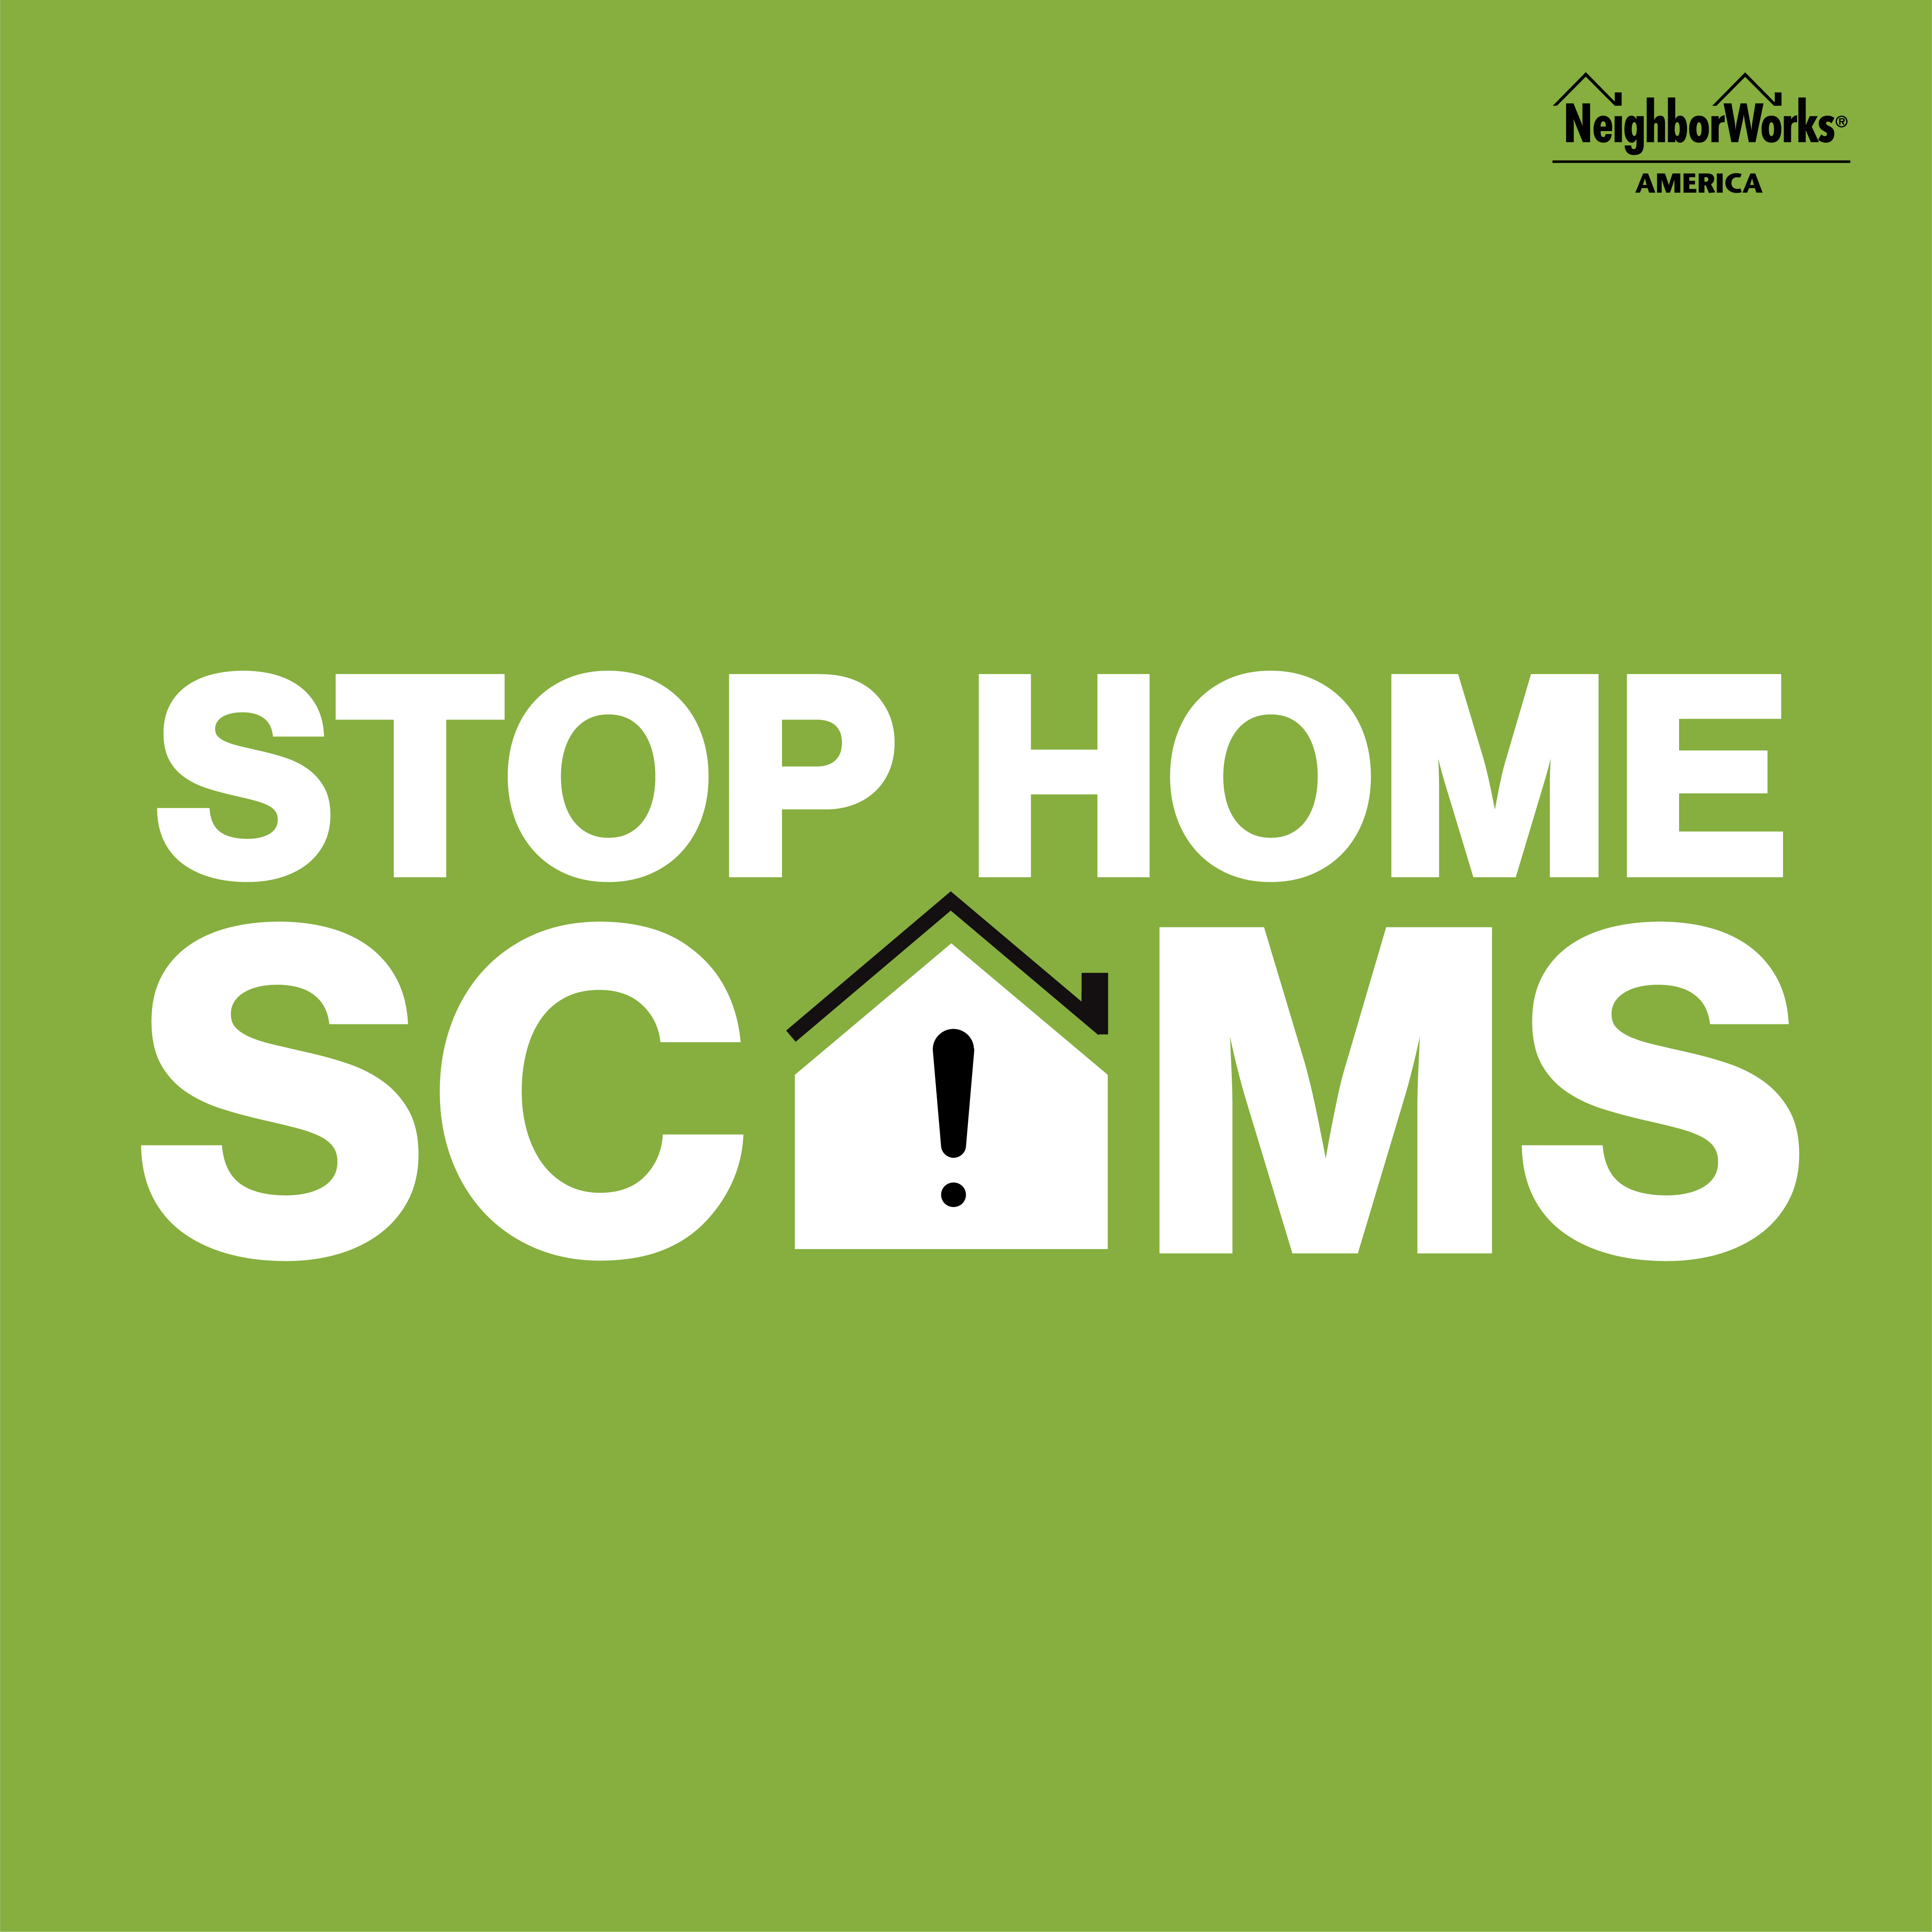 NeighborWorks NEPA Joins StopHomeScams.org Campaign to Empower Homeowners and Renters to Combat Housing Scams